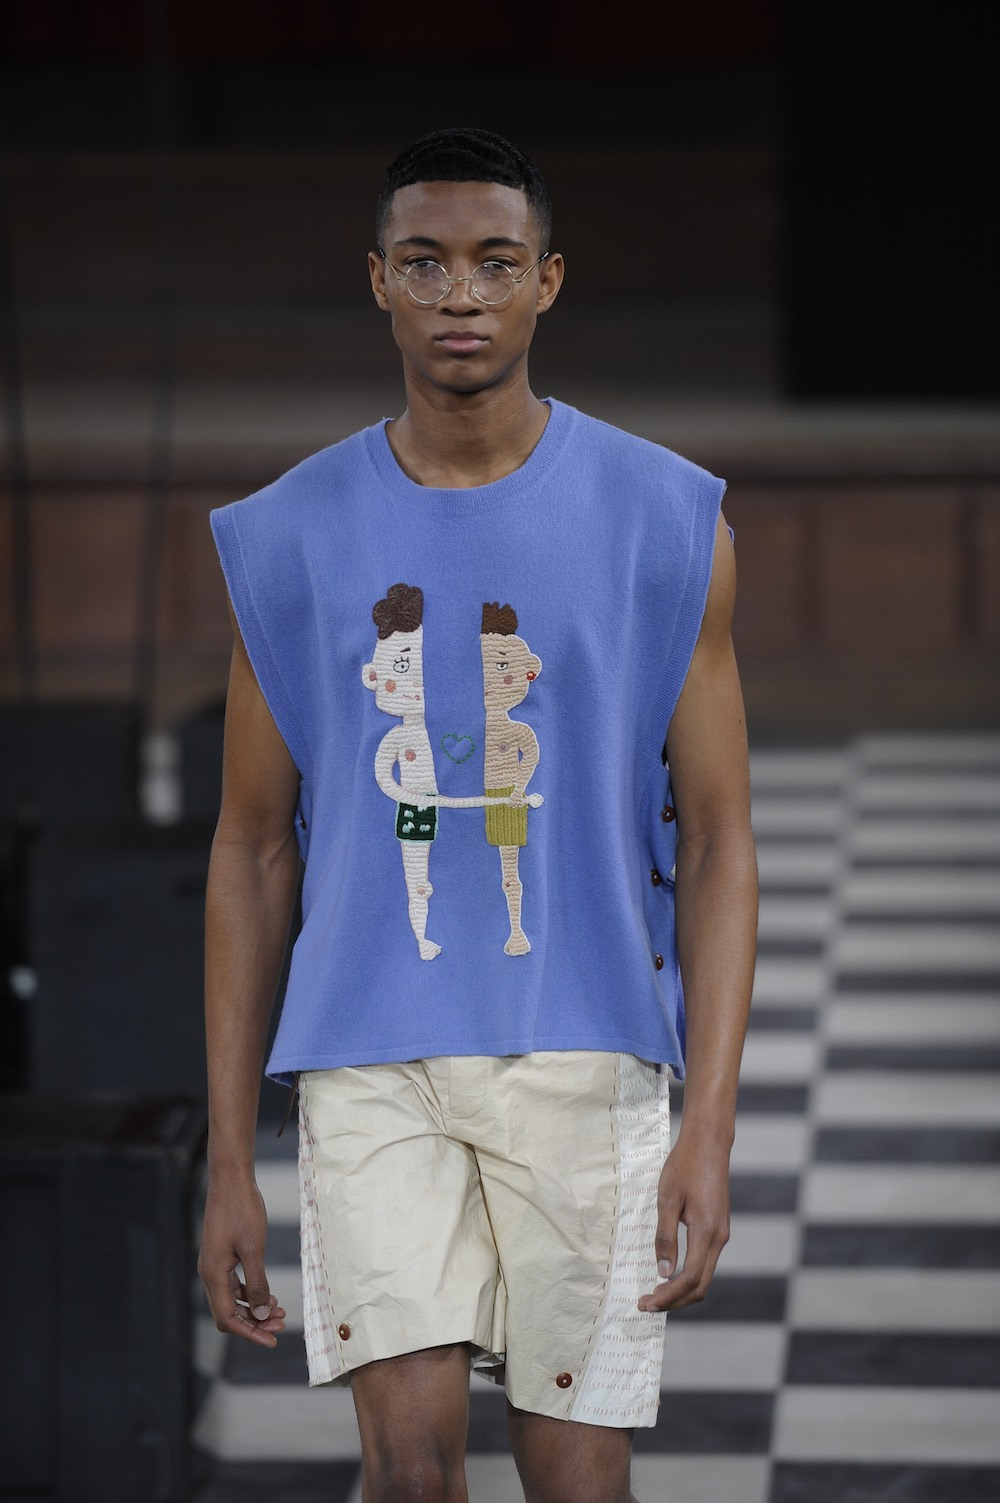 Wenya Huang at LCFMA18 Menswear. Shot by Roger Dean.